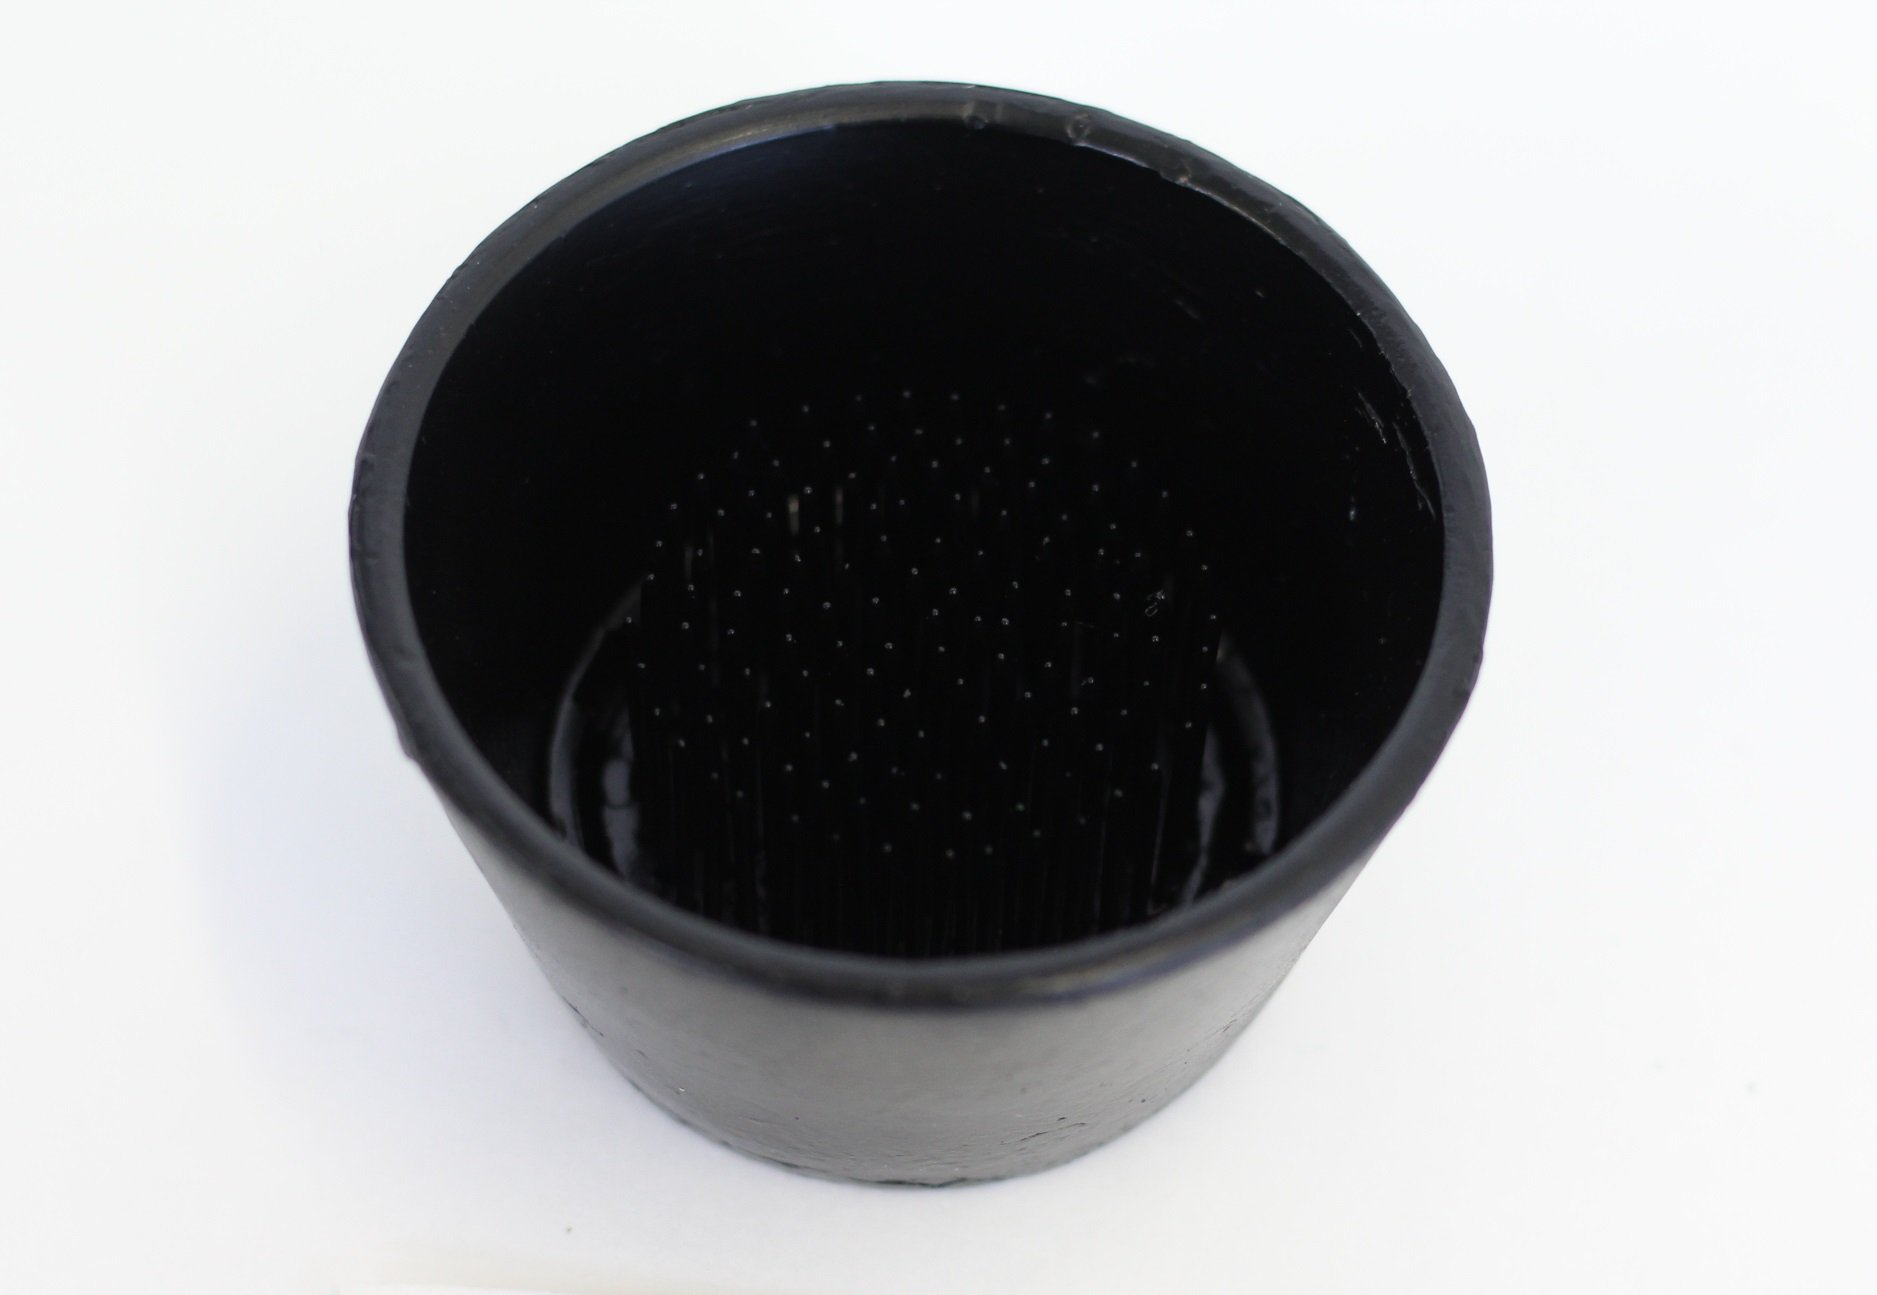 Flower Frog Tapered Pin Cup 2''. No-Rust, Extra-Long Brass Pins Make Designing Easy. Perfect for Ikebana Flower Arranging. Made in the USA. (2'', Black)